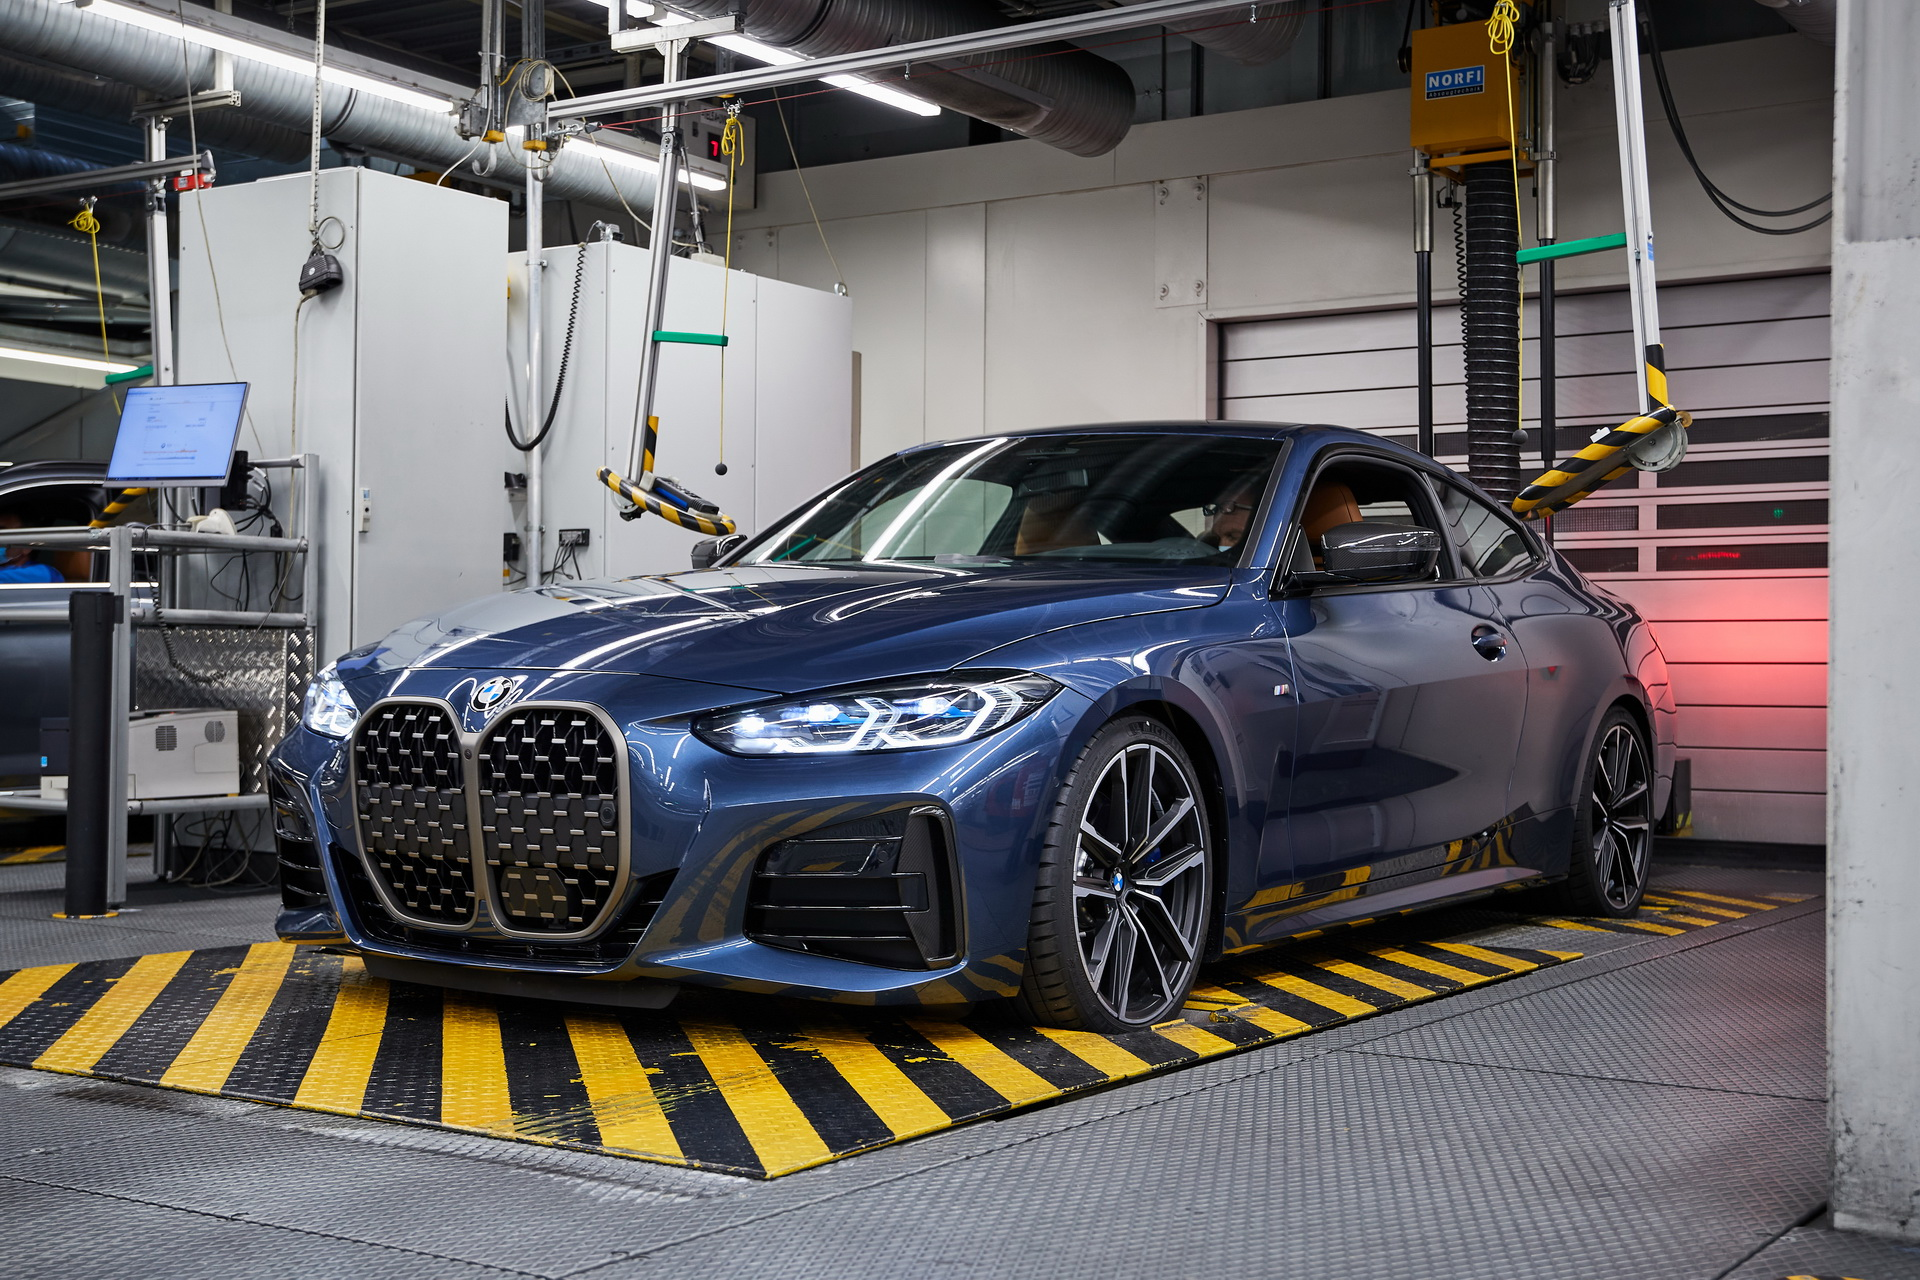 2021-bmw-4-5-6-series-production-dingolfing-23.jpg